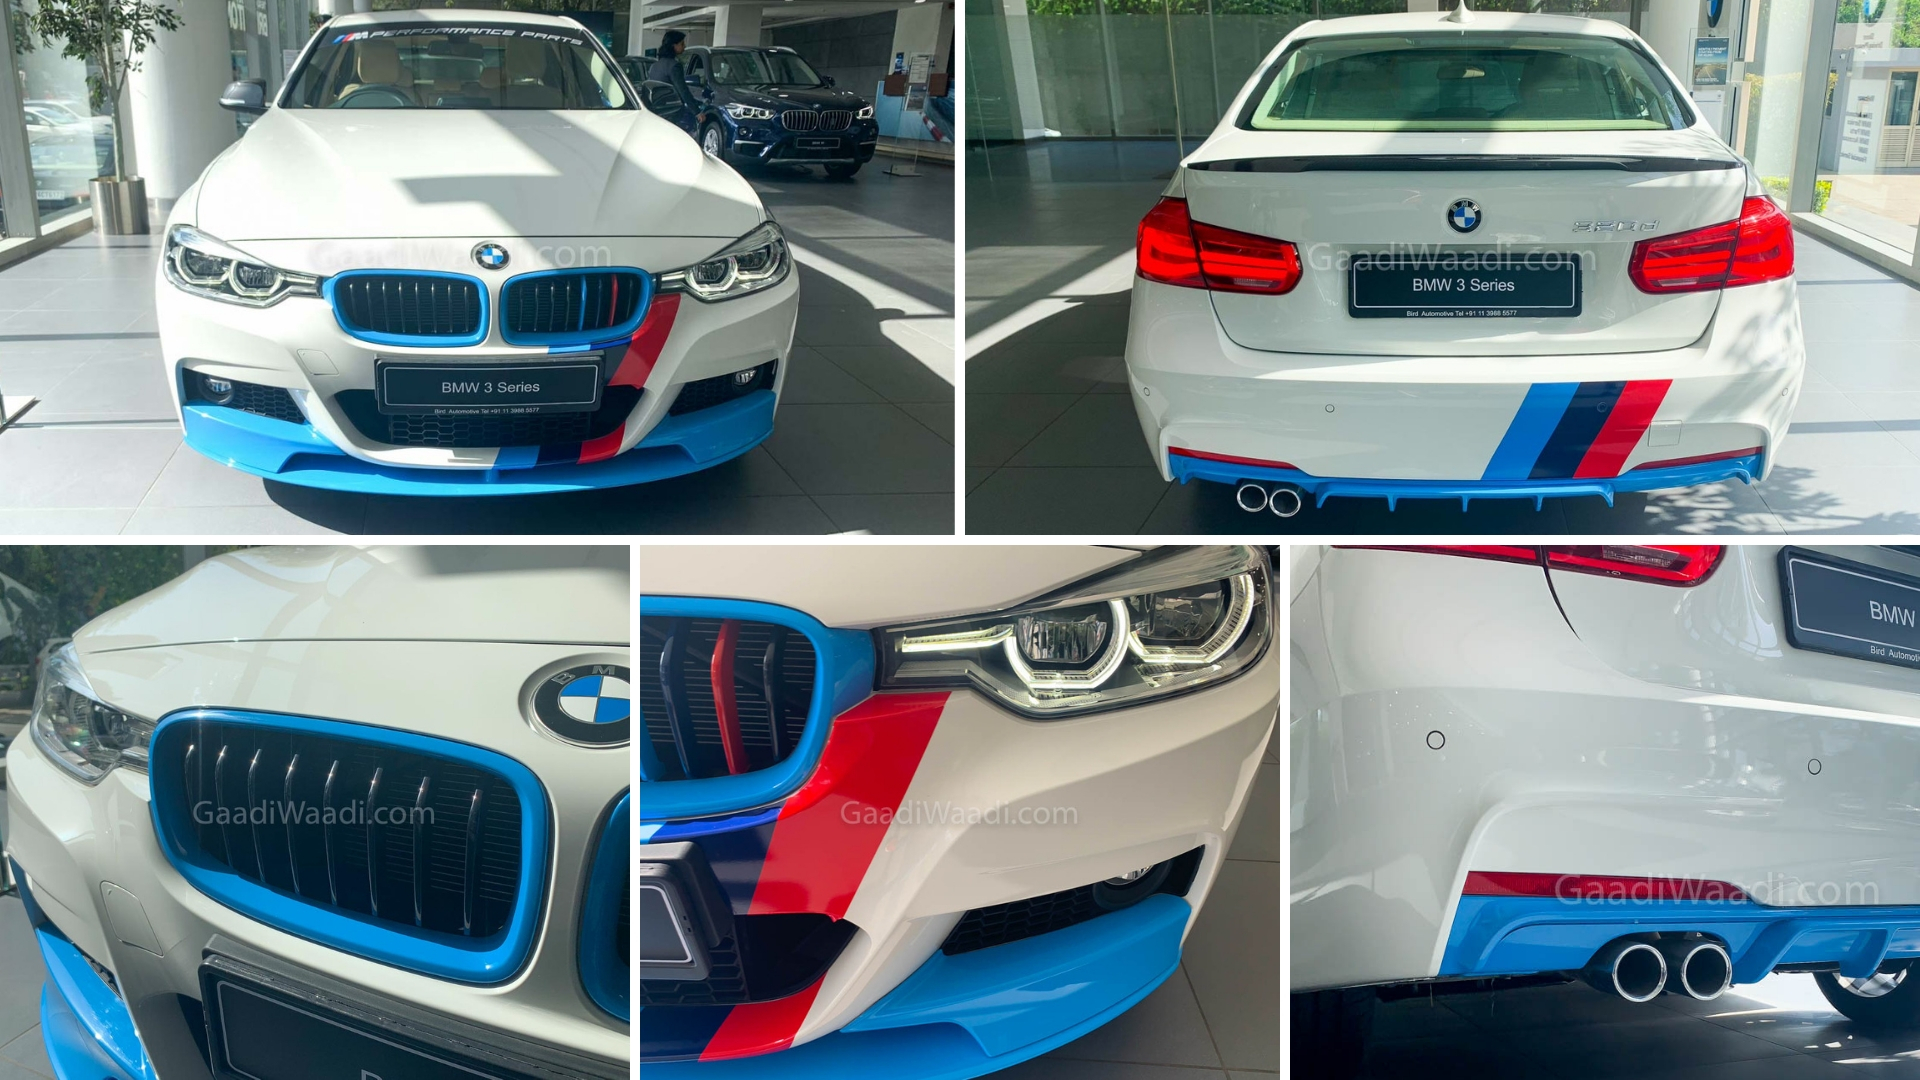 This Bmw 3 Series M Performance Inspired Custom Body Kit